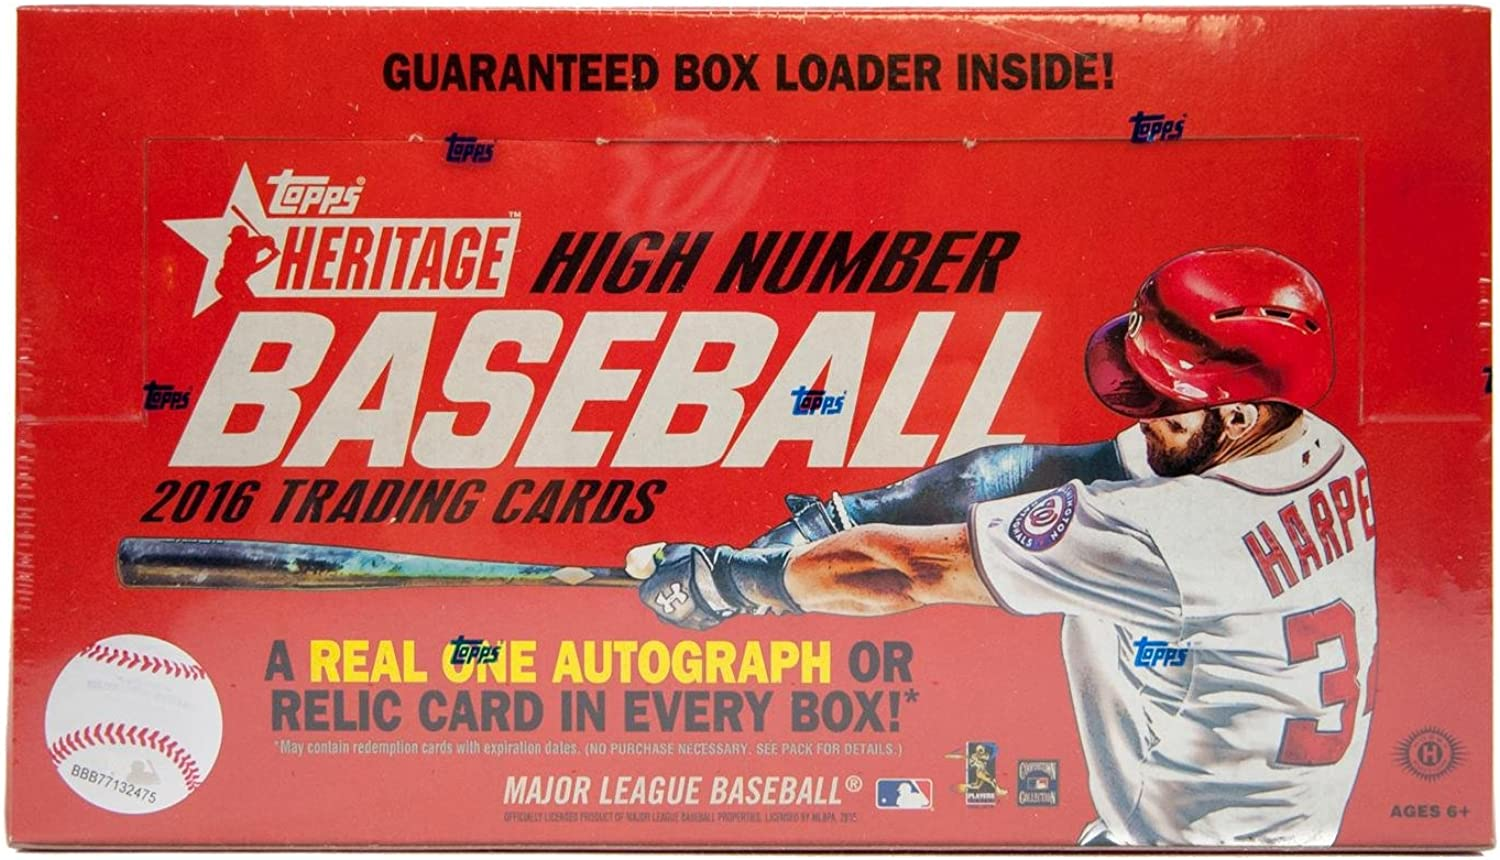 2016 Topps Heritage High Number Baseball Hobby Box